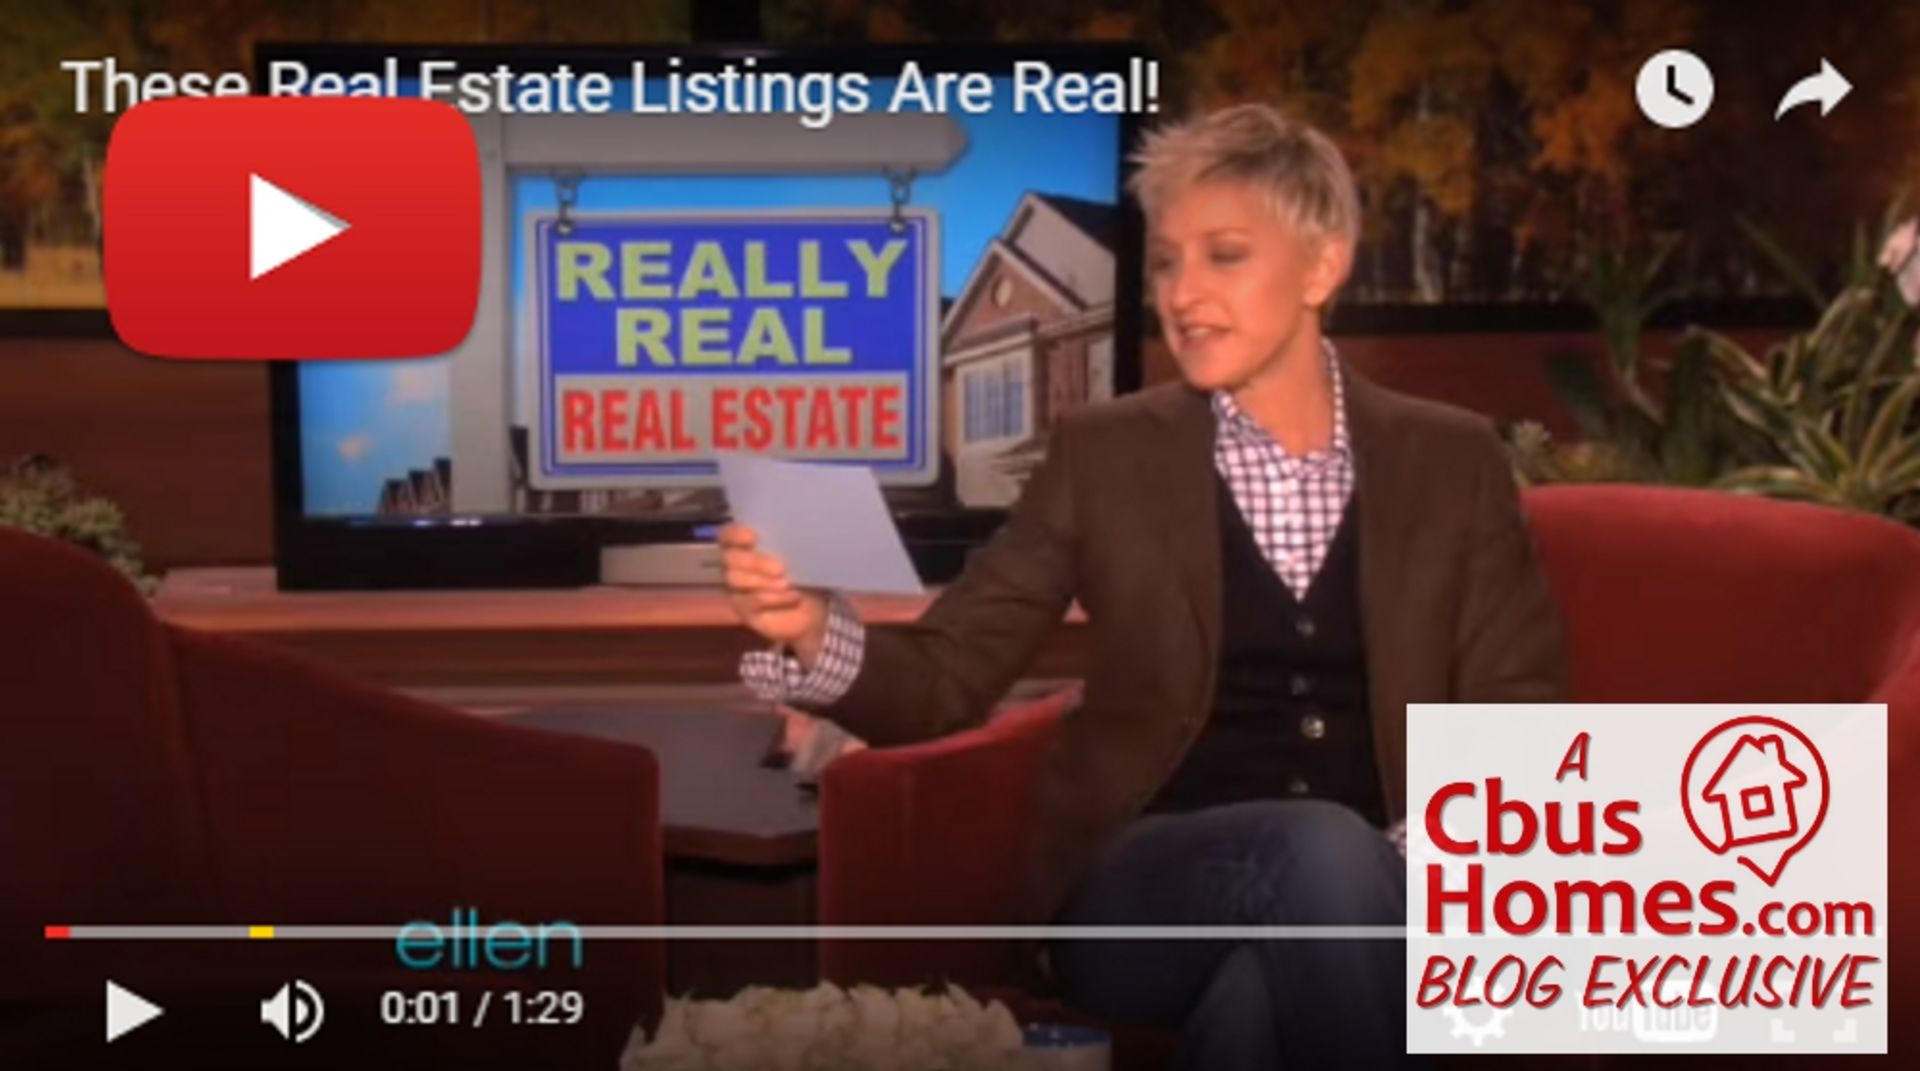 VIDEO: Really Real Real Estate from 'ellen'